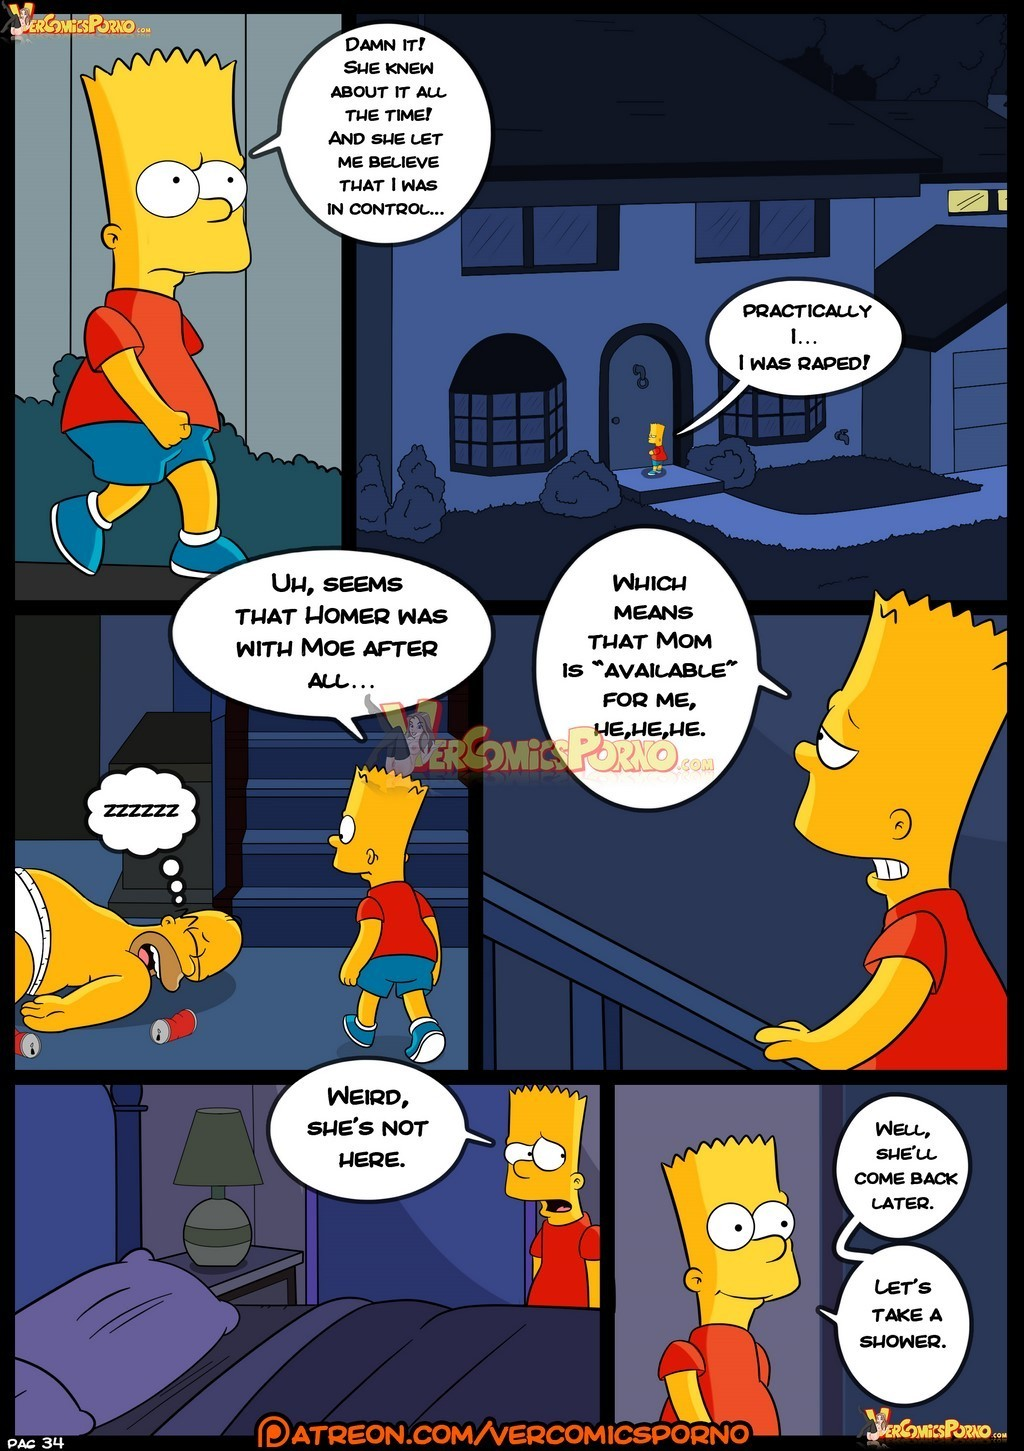 35 - The Simpsons. Part 8.